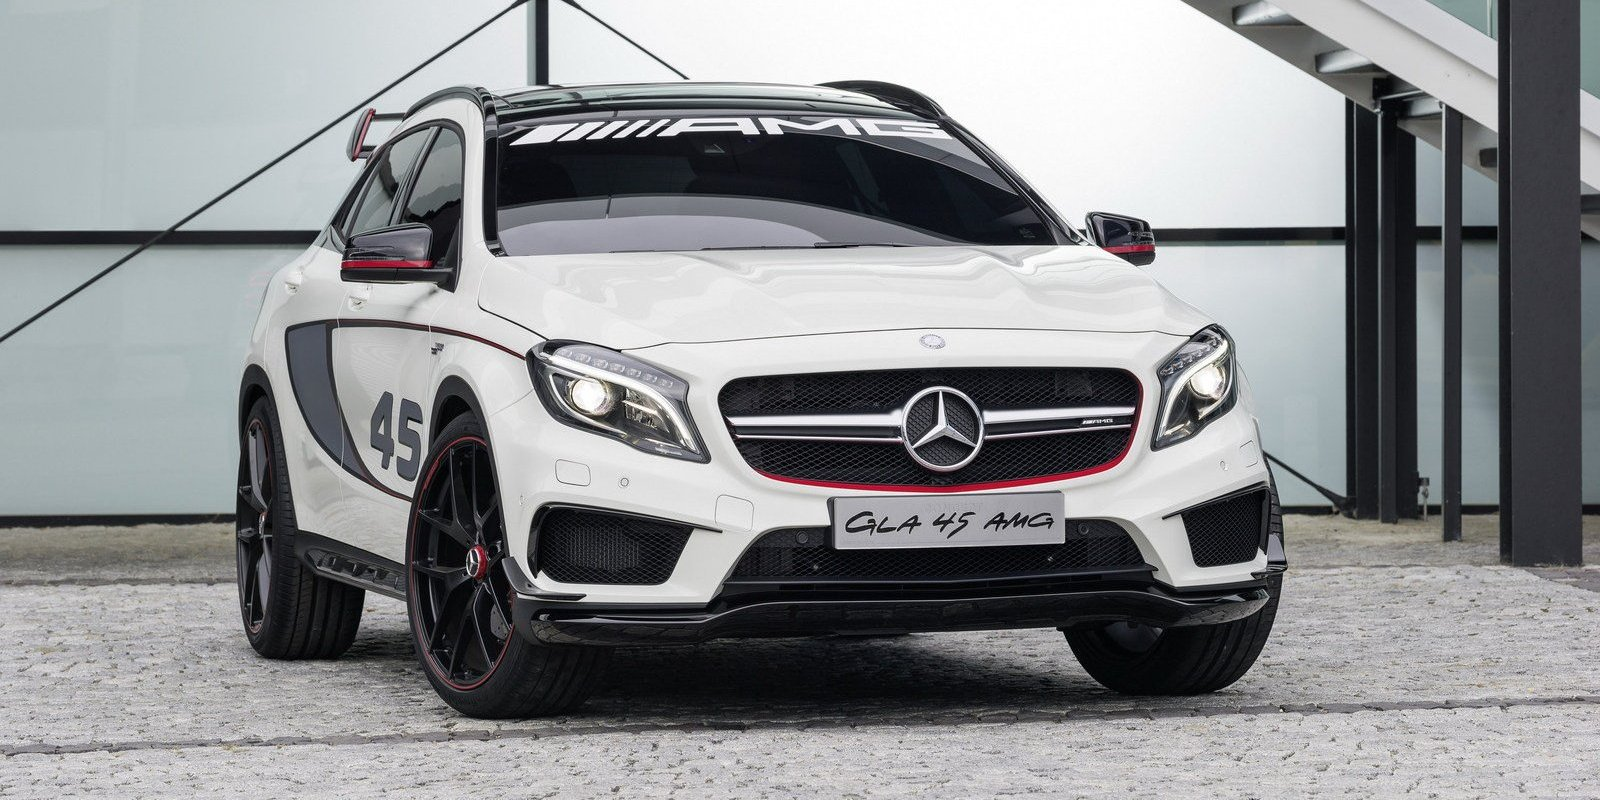 2013 mercedes gla 45 amg no car no fun muscle cars and power cars. Black Bedroom Furniture Sets. Home Design Ideas